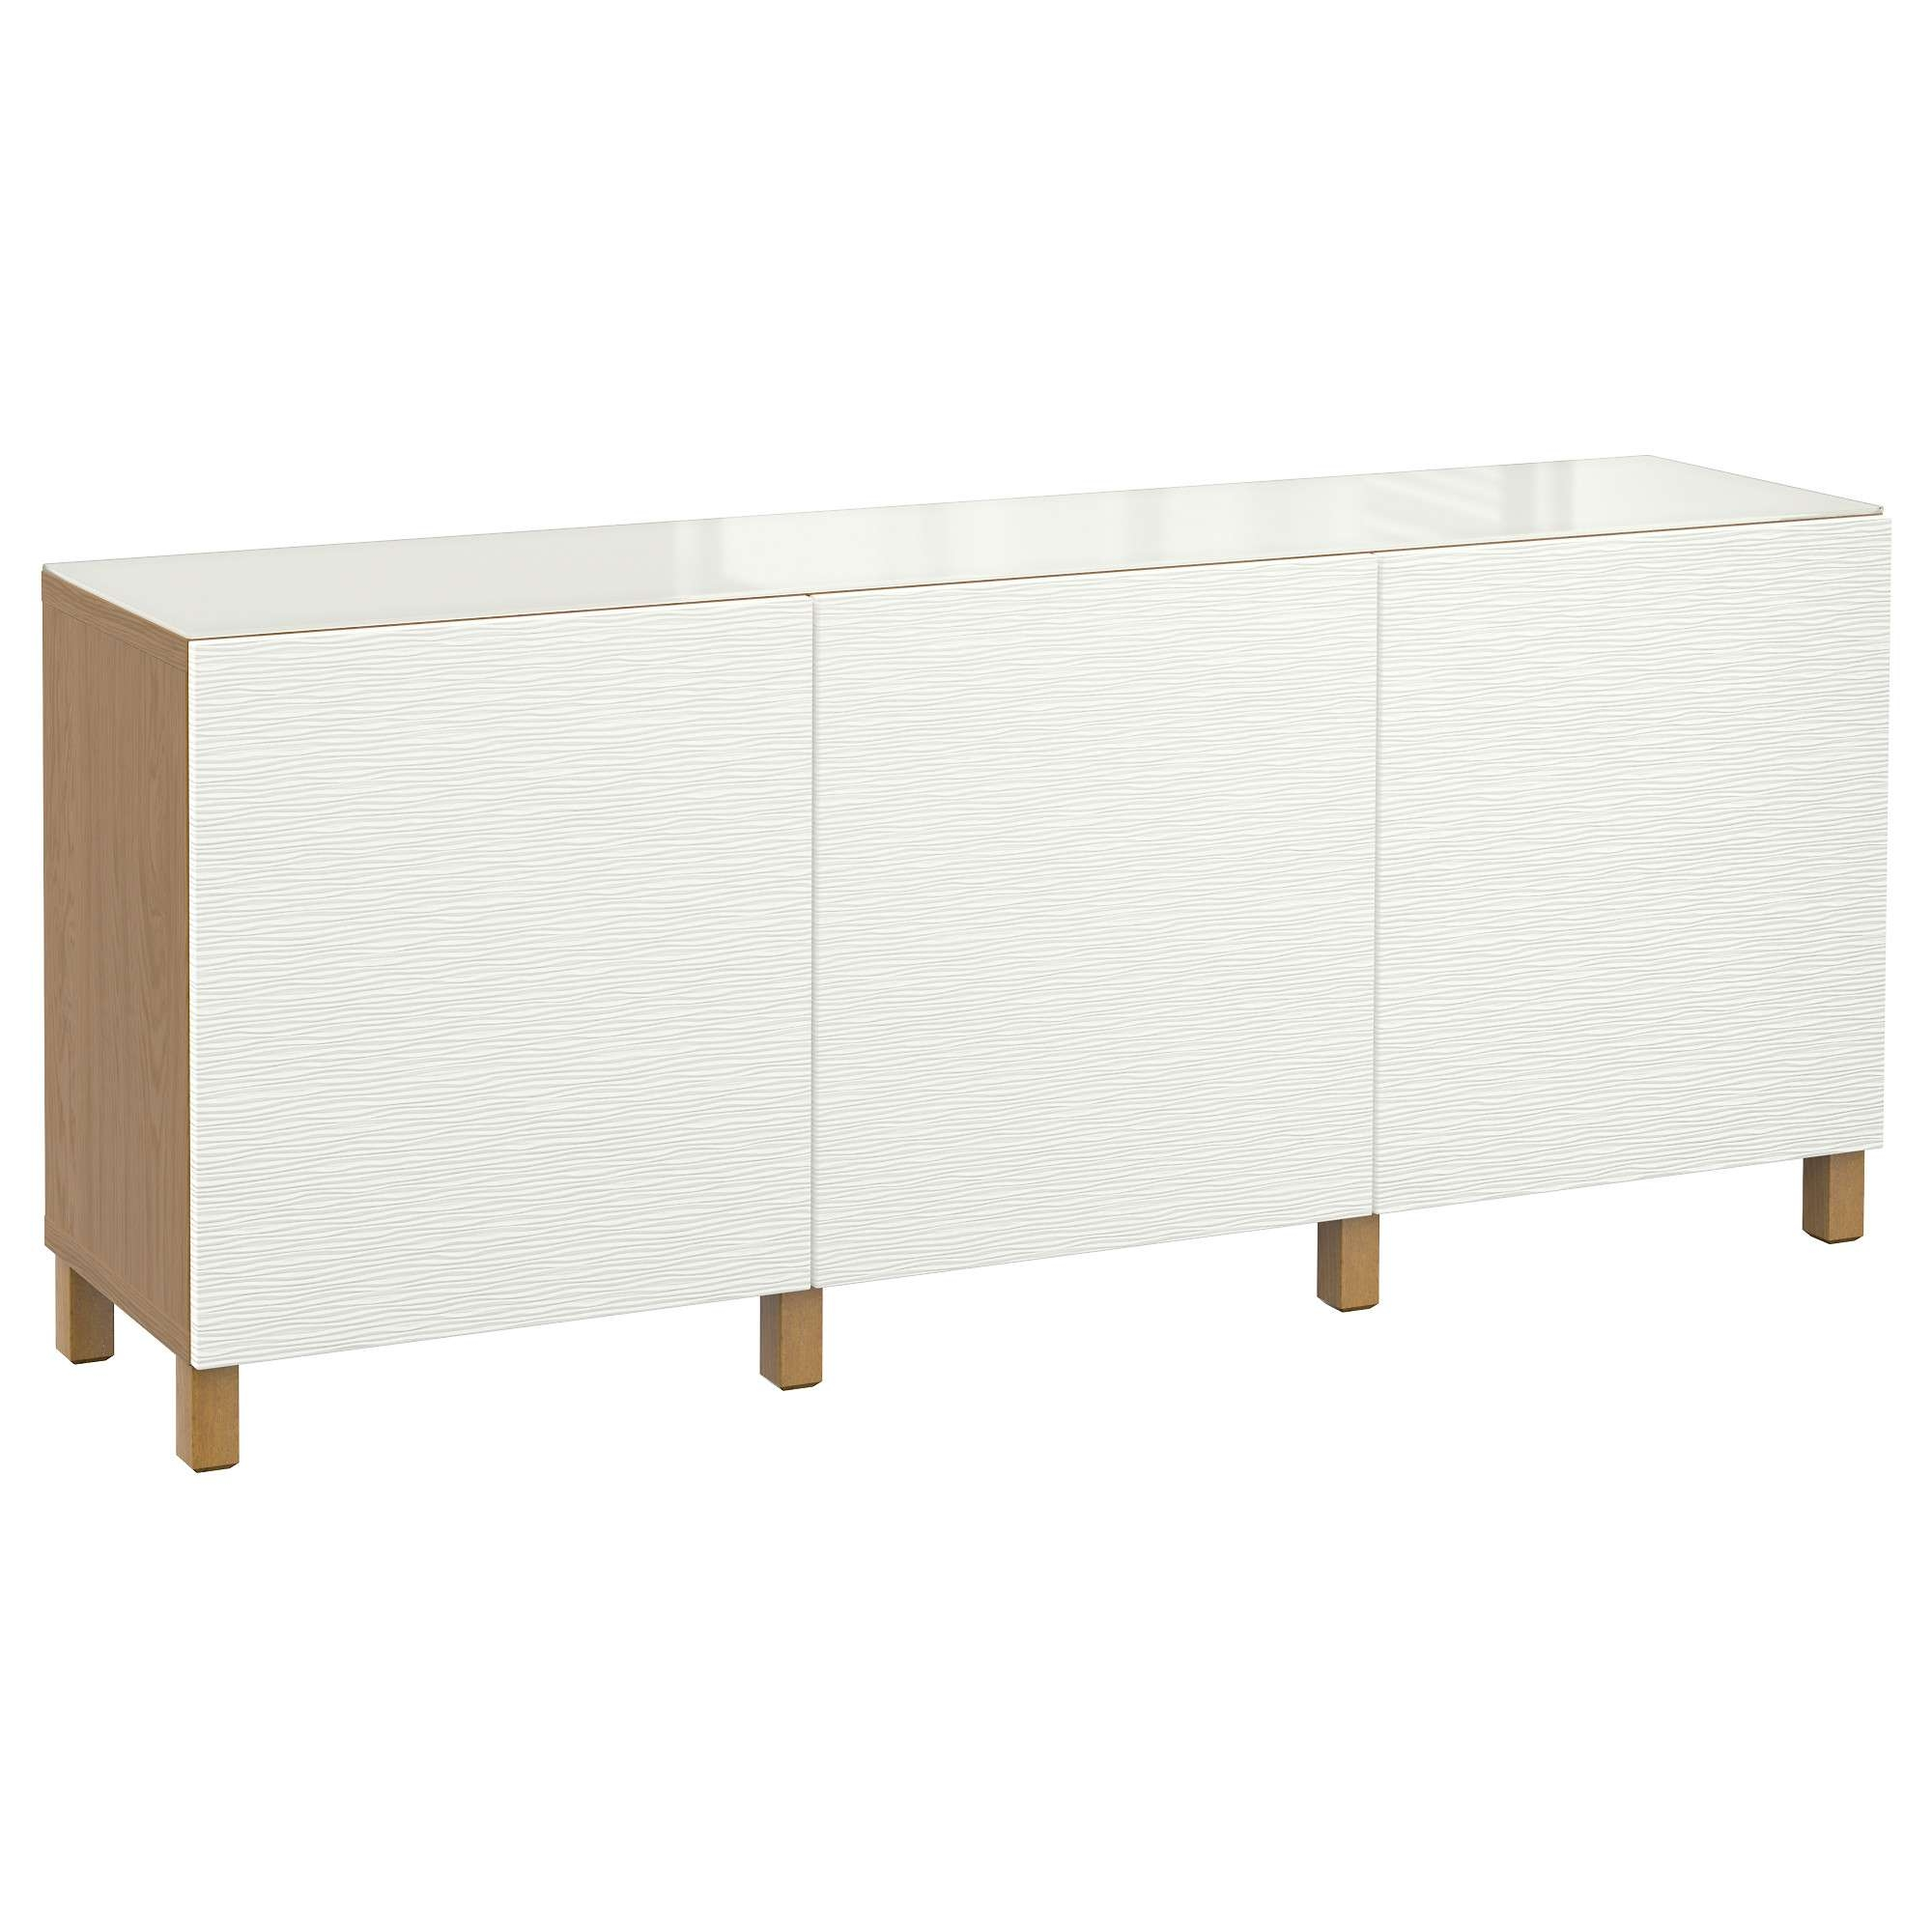 Bestå Storage Combination With Doors Oak Effect/laxviken White For White Gloss Ikea Sideboards (View 5 of 20)